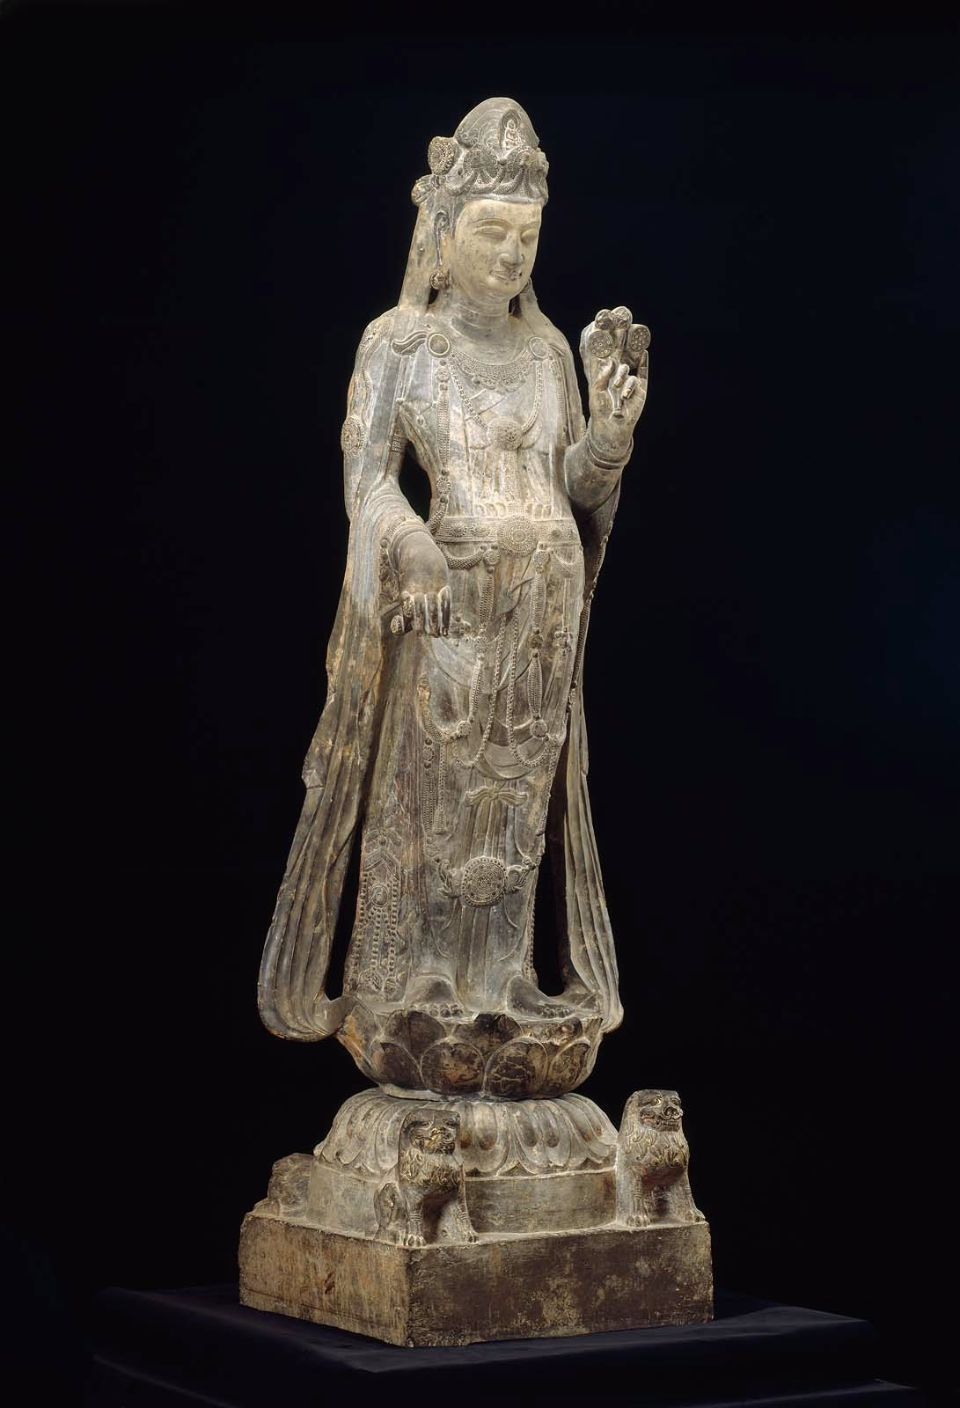 Guanyin bodhisattva of compassion chinese northern zhou or early guanyin bodhisattva of compassion chinese northern zhou or early sui dynasty about biocorpaavc Choice Image